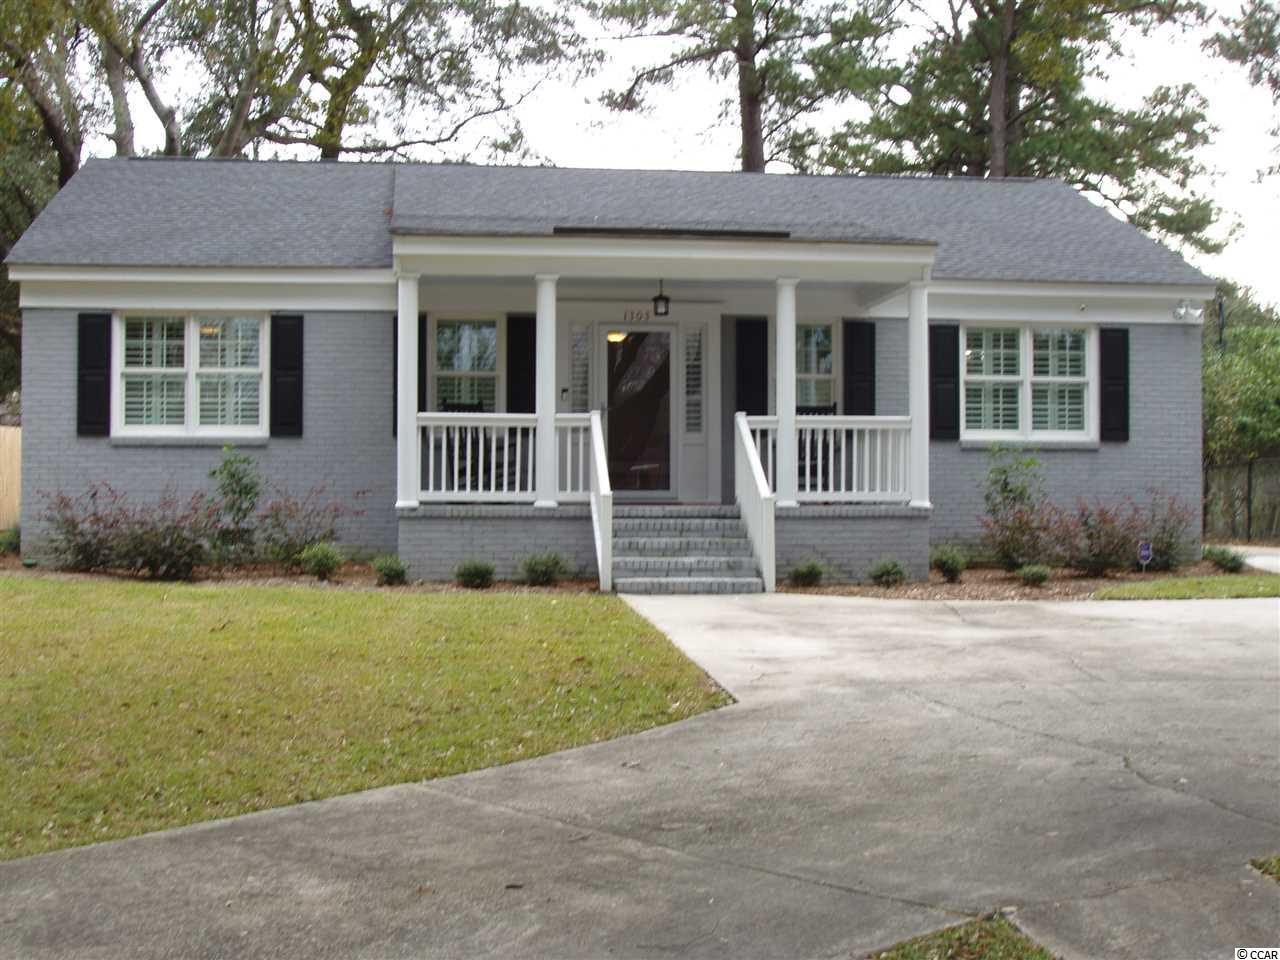 Newly renovated all brick home, roof one year old, located ten minutes from Pawleys Island Beach. No monthly hoa fee. Within one mile from grocery stores, doctors office, Walmart and historic downtown district. Georgetown is located on Winyah Bay and has 60,000 population in the county.